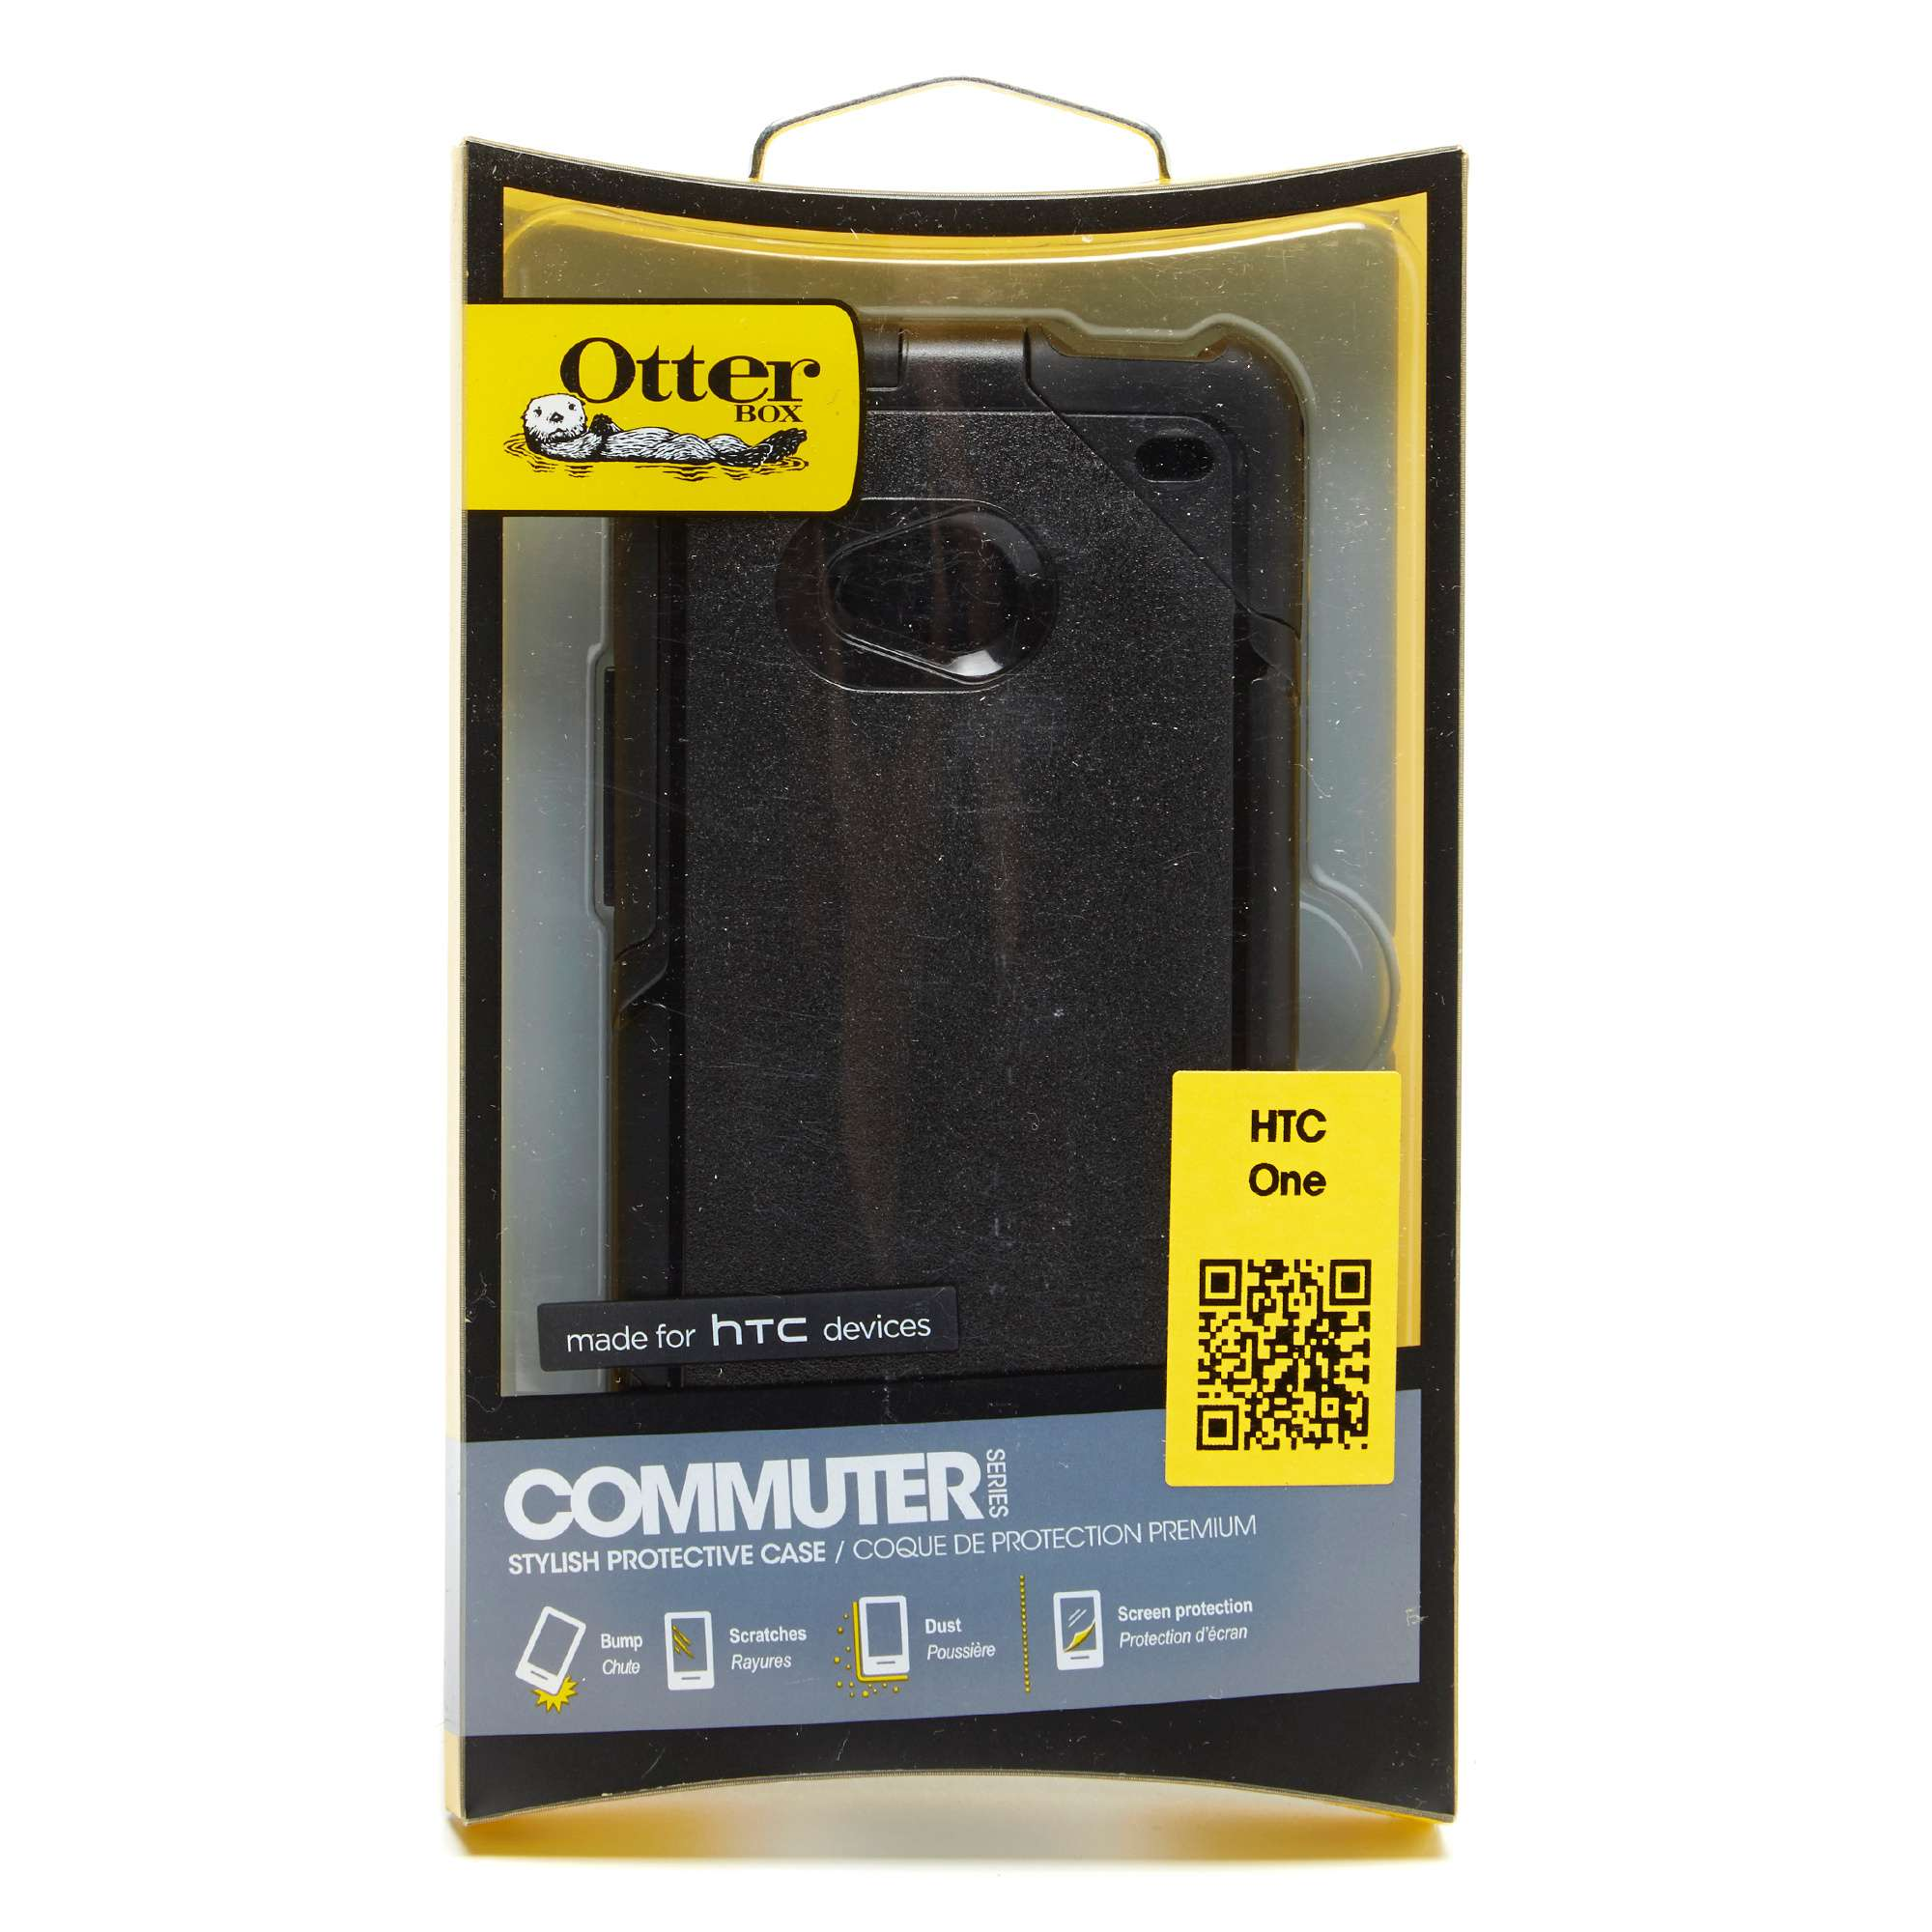 OTTERBOX HTC One Commuter Series Protective Case